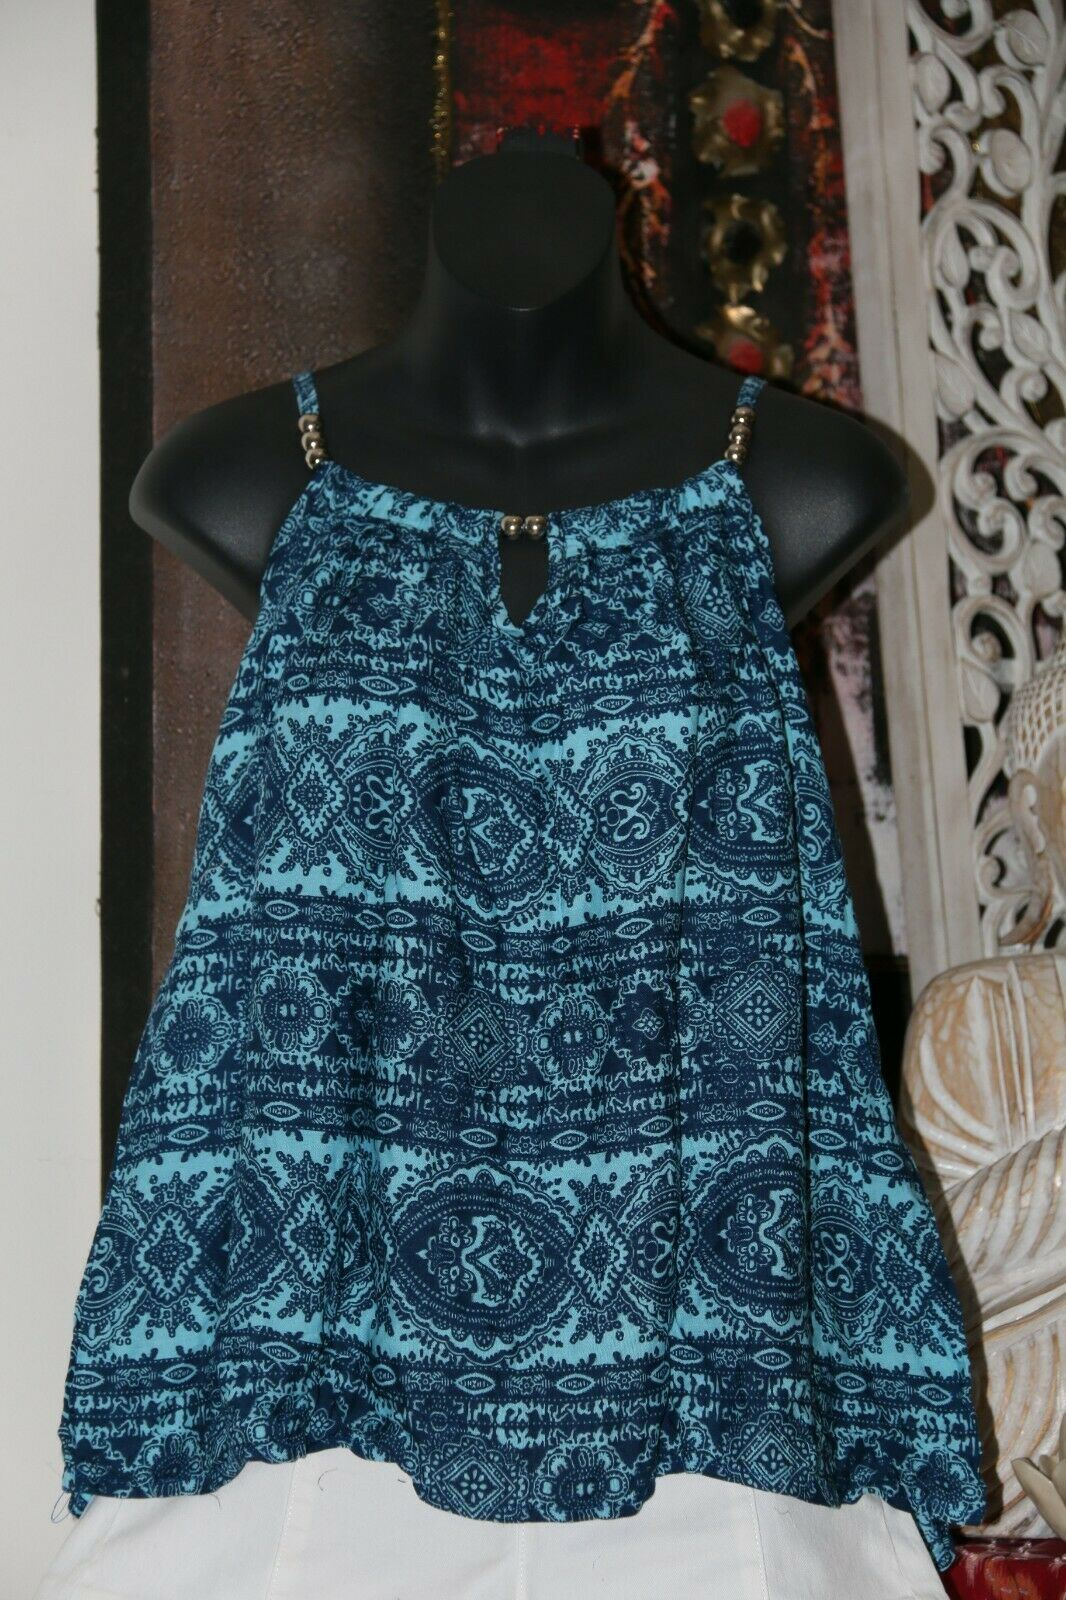 NEW Ladies Cotton Bali Top / One Size / Cool Balinese Top w/Silver Beads